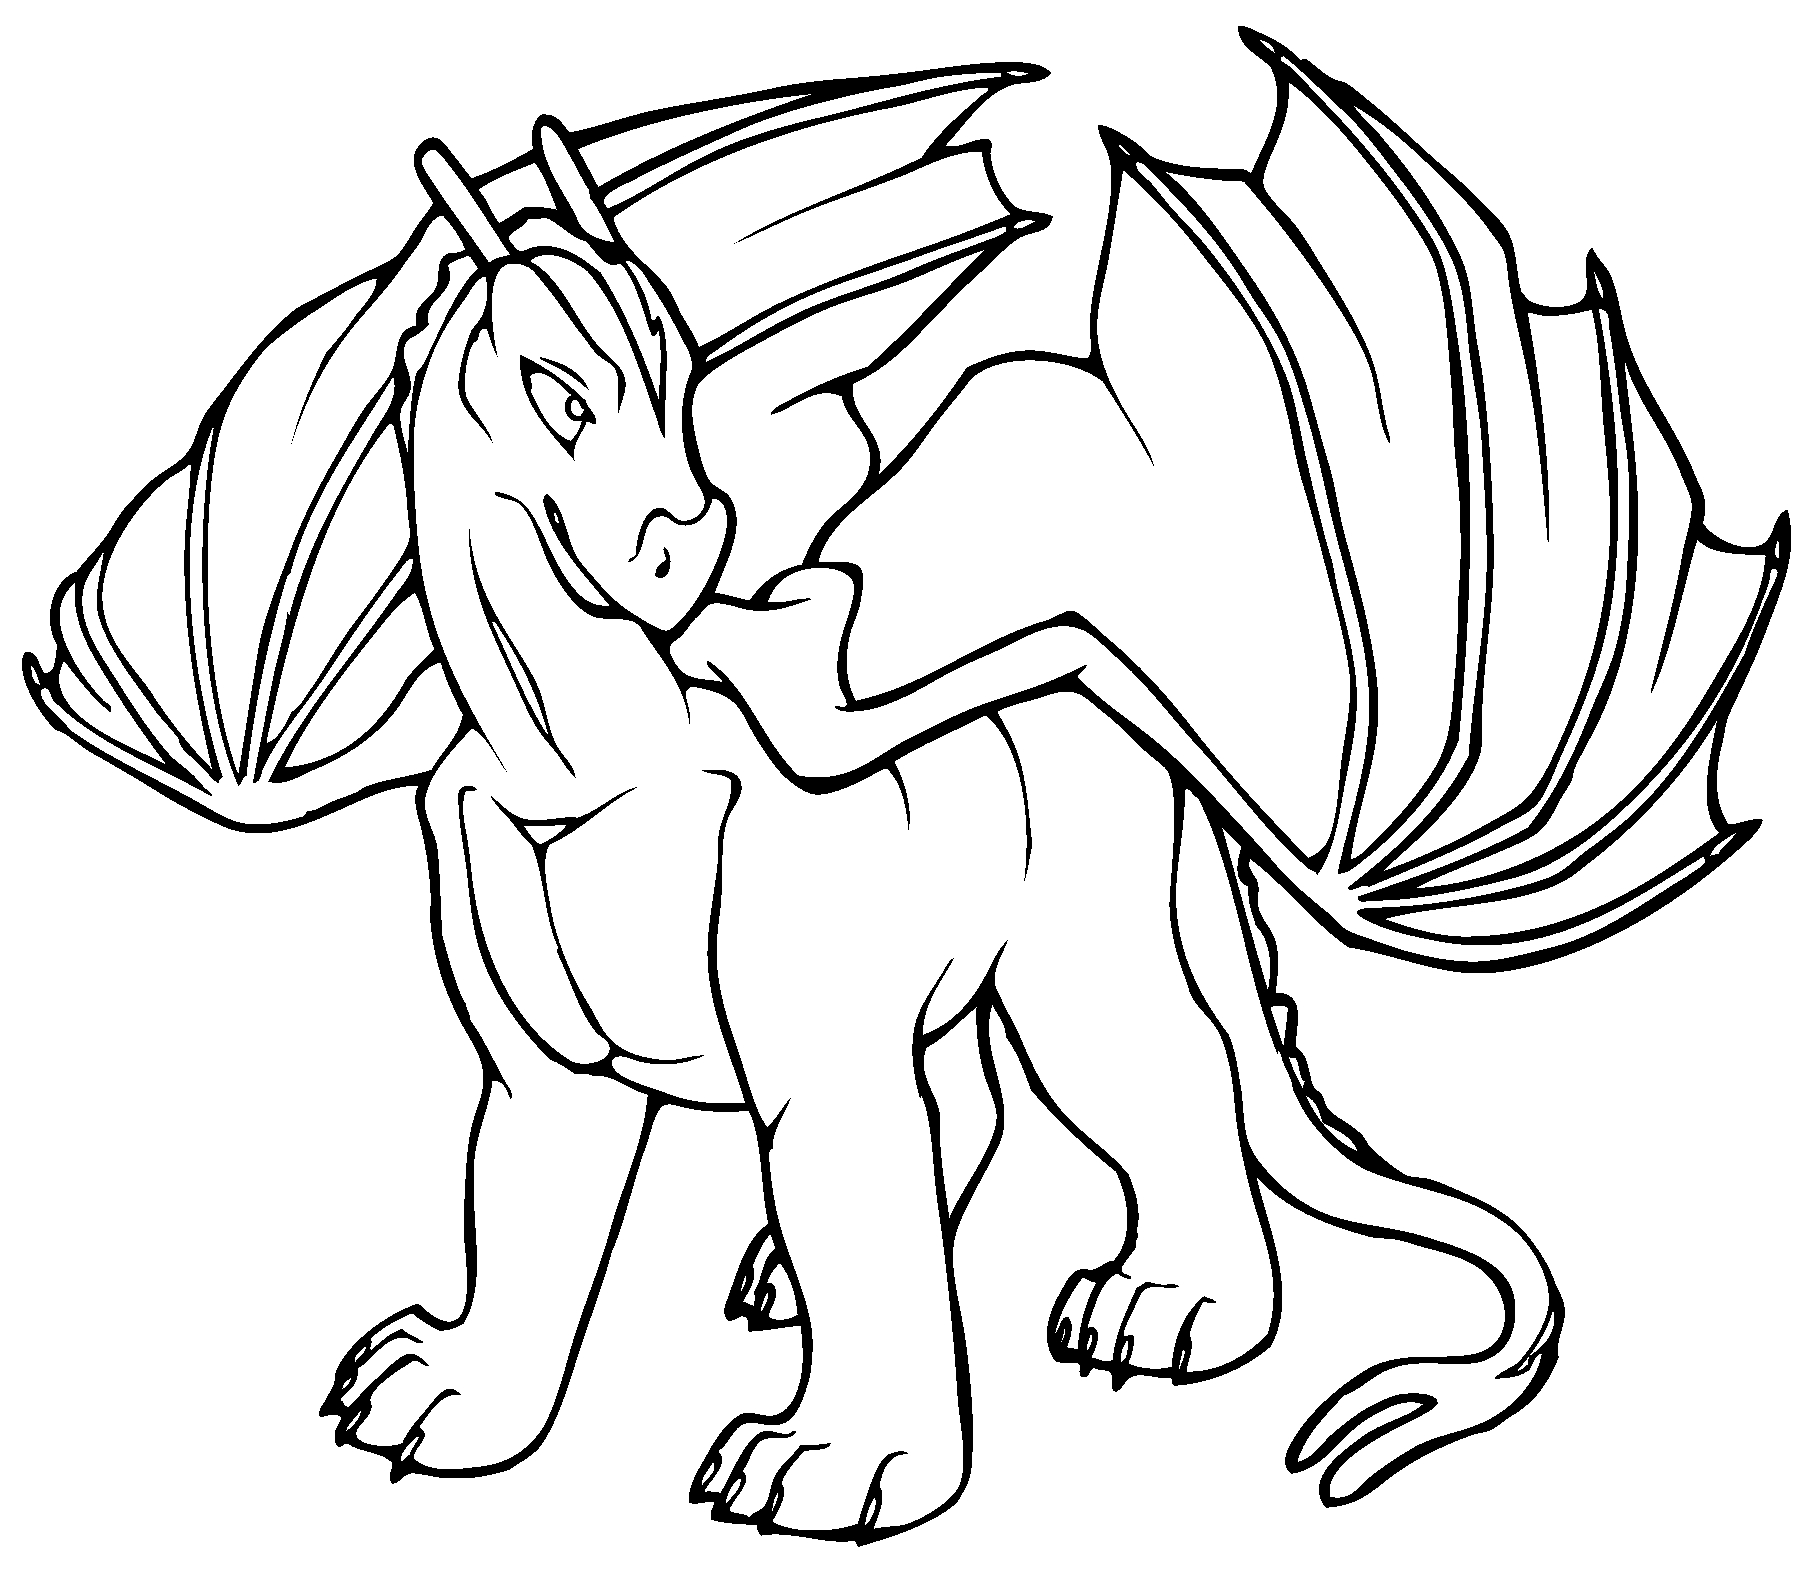 1812x1573 Best Of Coloring Pages Dragons Coloring Pages Free Coloring